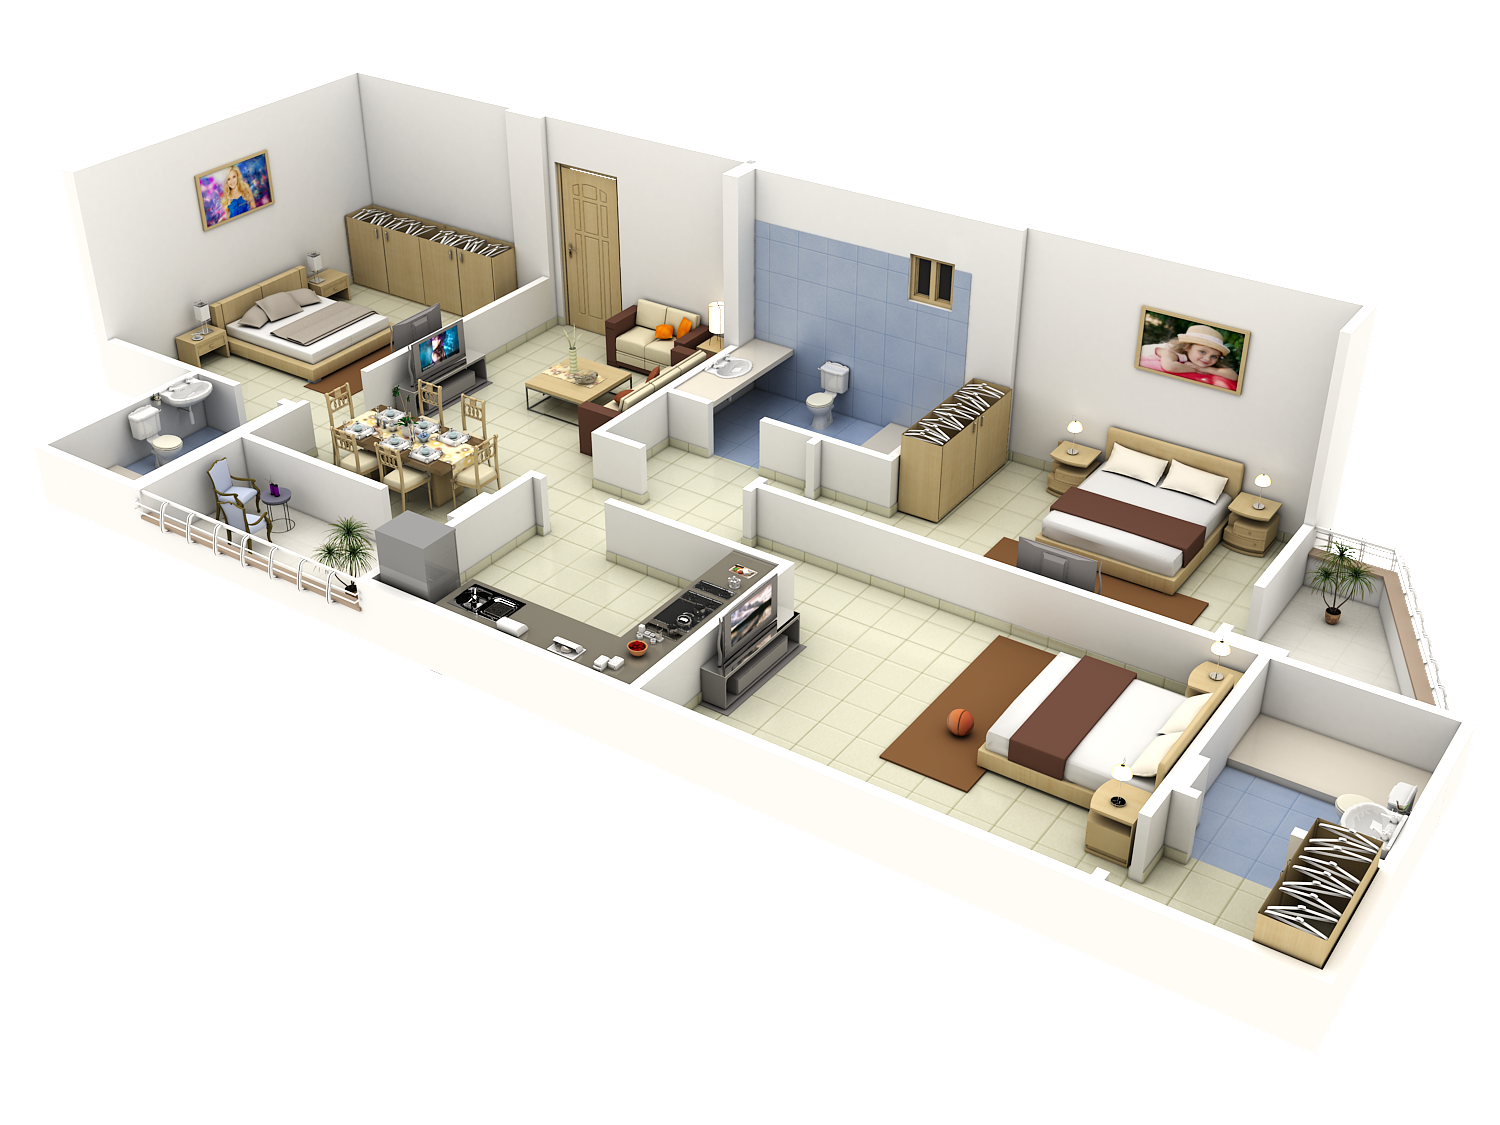 15 Living Room Ceiling Designs You Need To See together with 3d Modules as well Megazine php moreover 171629435773007377 together with Megazine. on 3d floor plans are also a great way for